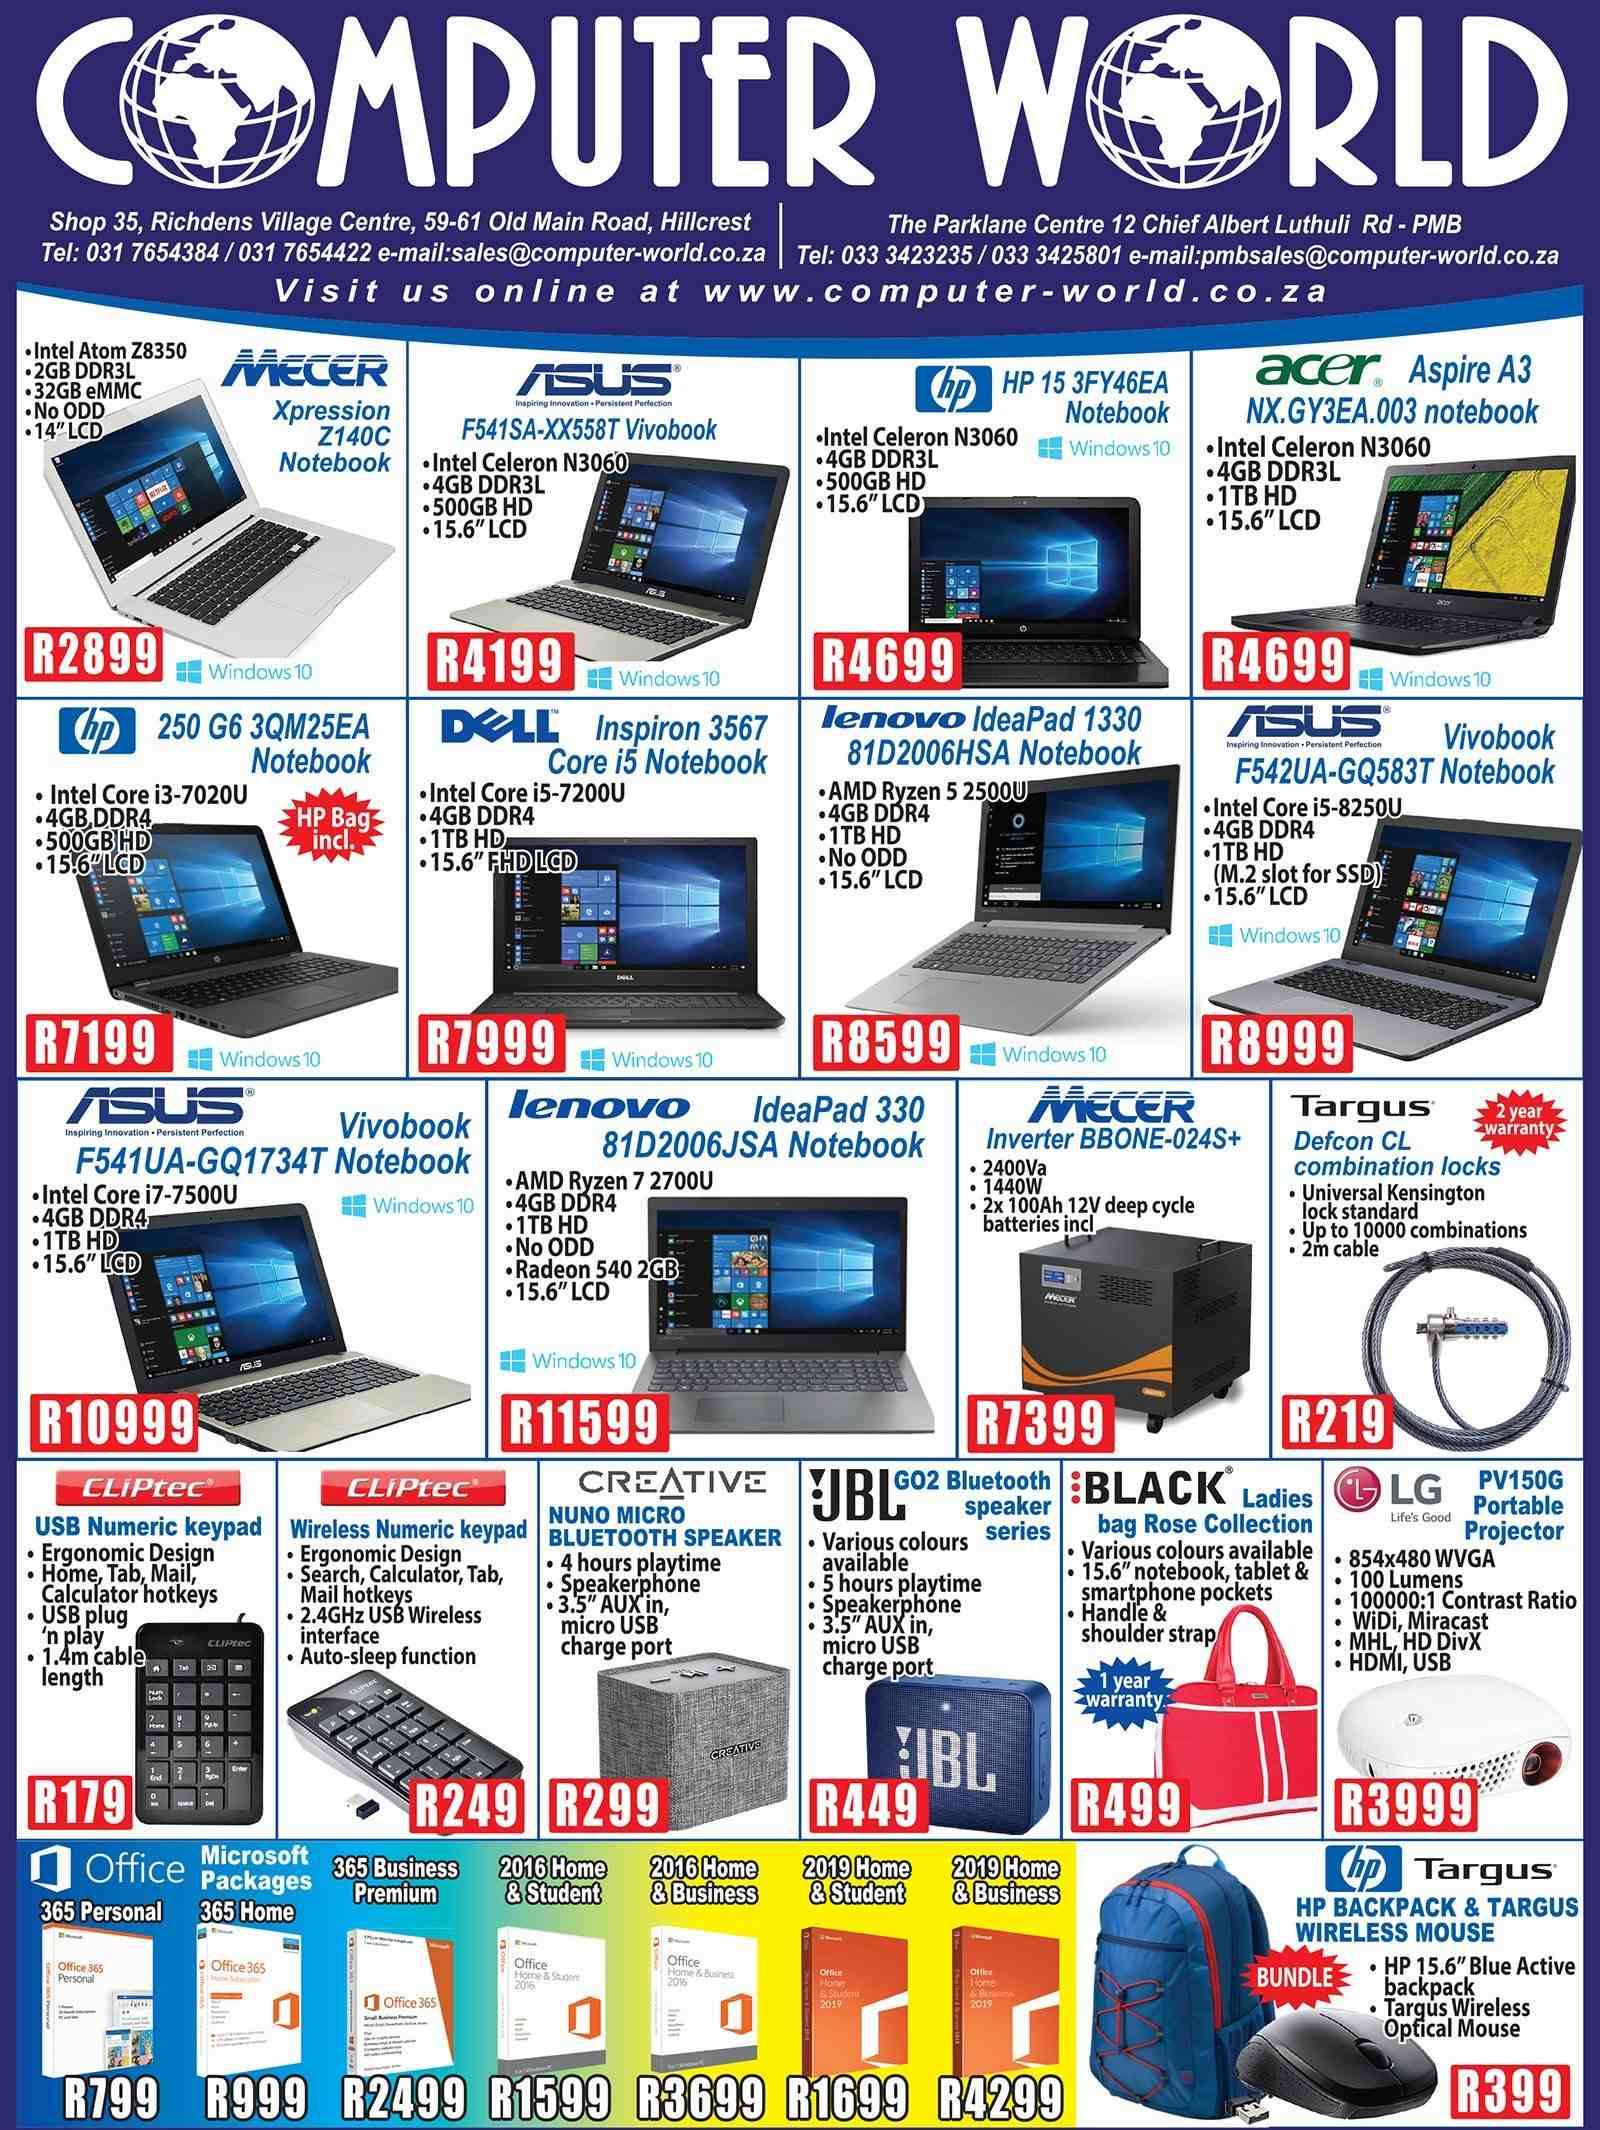 Computer World special - 02.11.2019 - 02.18.2019 - Sales products - acer, amd, backpack, bag, bluetooth, collection, lenovo, lg, microsoft, mouse, radeon, speaker, tablet, windows, hp, intel, notebook, wireless, ryzen, smartphone, bluetooth speaker, calculator. Page 1.